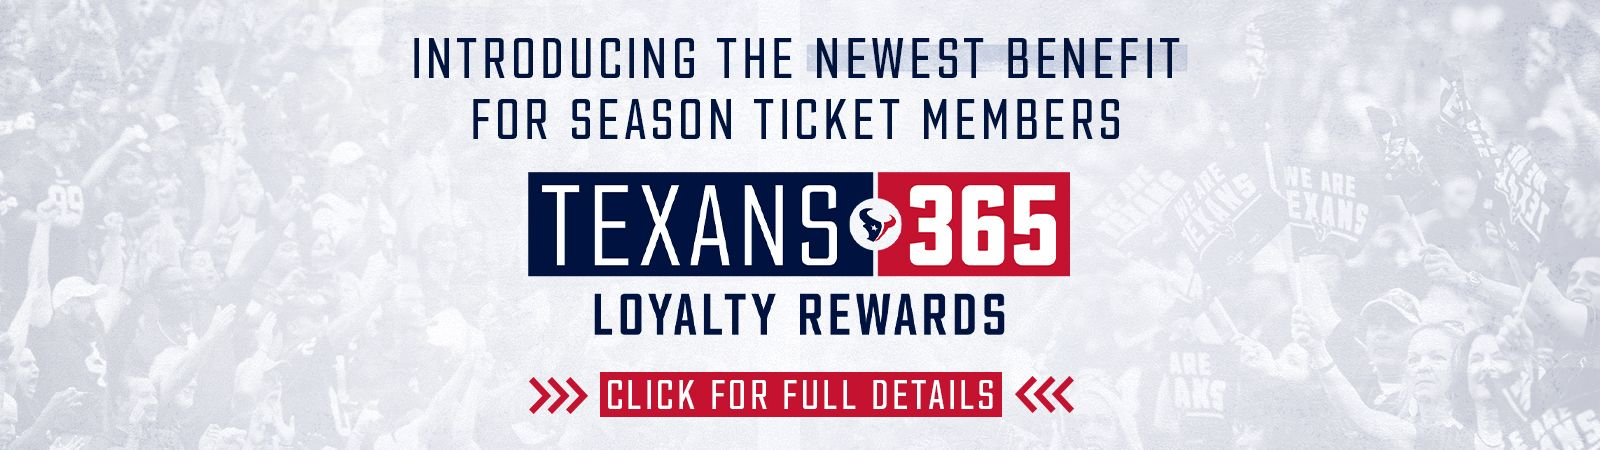 Introducing the newest benfit for season ticket members. Texans 365 Loyalty Rewards. Click for full details.